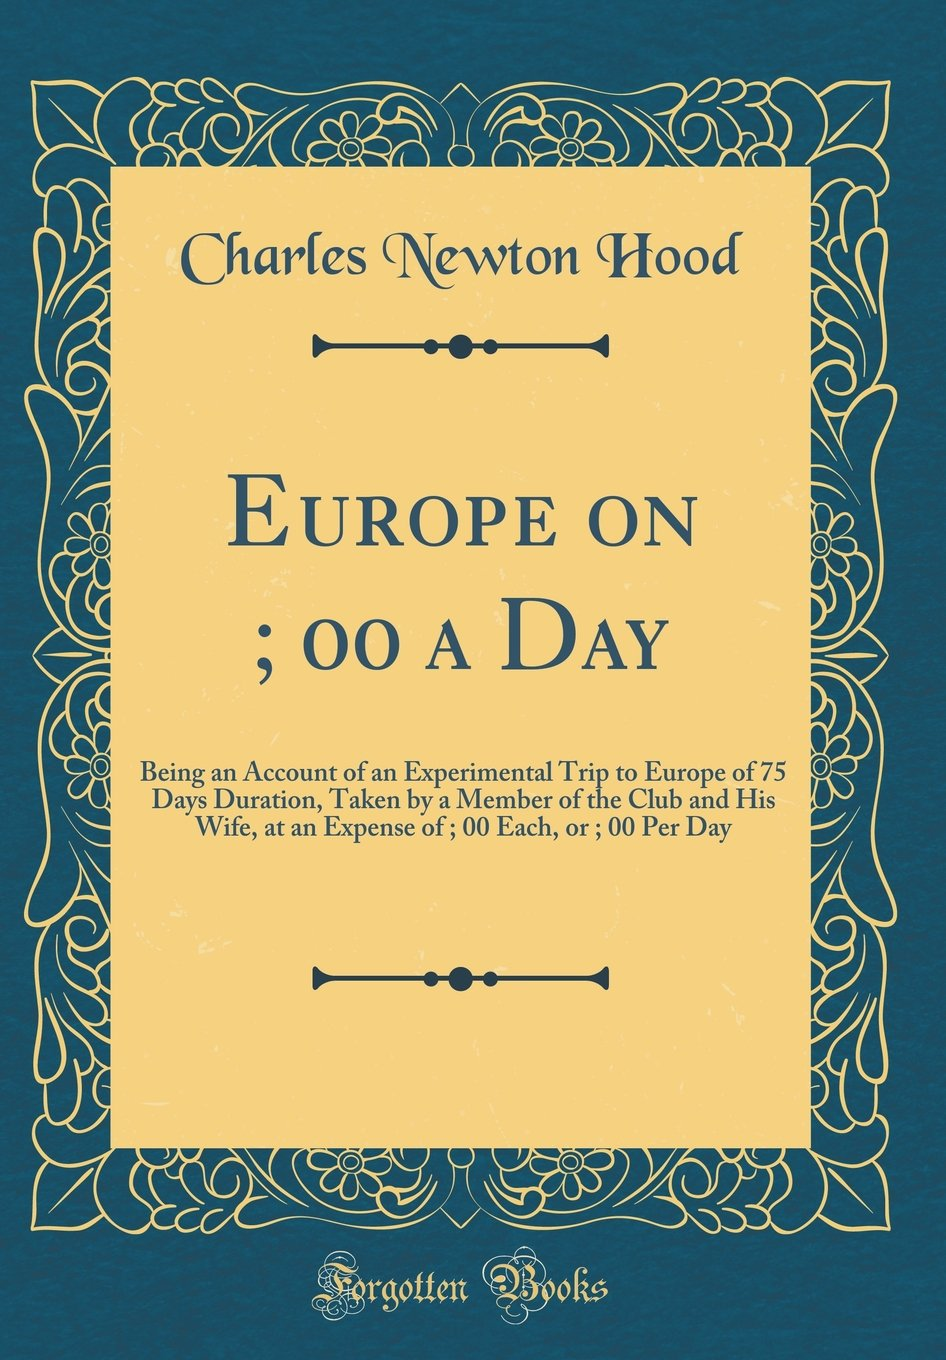 Read Online Europe on $4; 00 a Day: Being an Account of an Experimental Trip to Europe of 75 Days Duration, Taken by a Member of the Club and His Wife, at an ... 00 Each, or $4; 00 Per Day (Classic Reprint) ebook